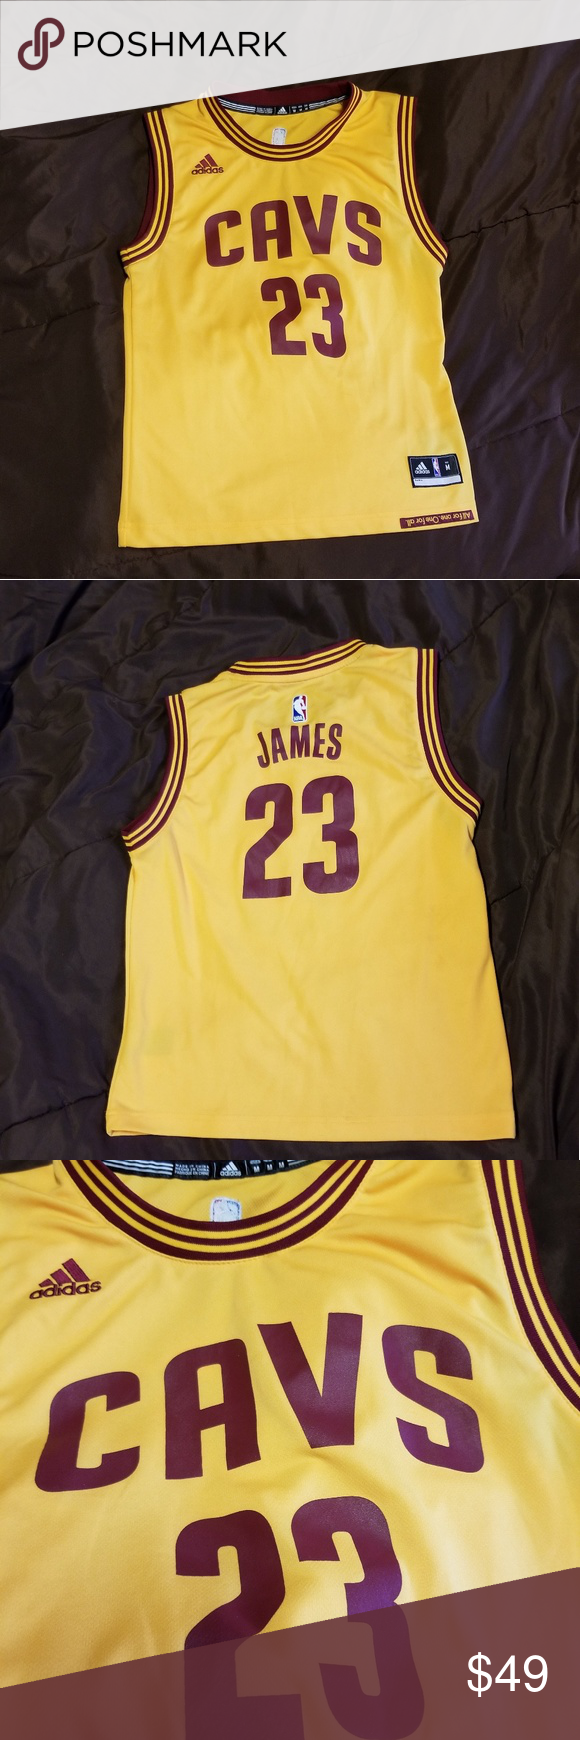 c2a8f7f5f8a Lebron James NBA adidas youth Basketball Jersey Official NBA merchandise adidas  LeBron James Cleveland Cavaliers number